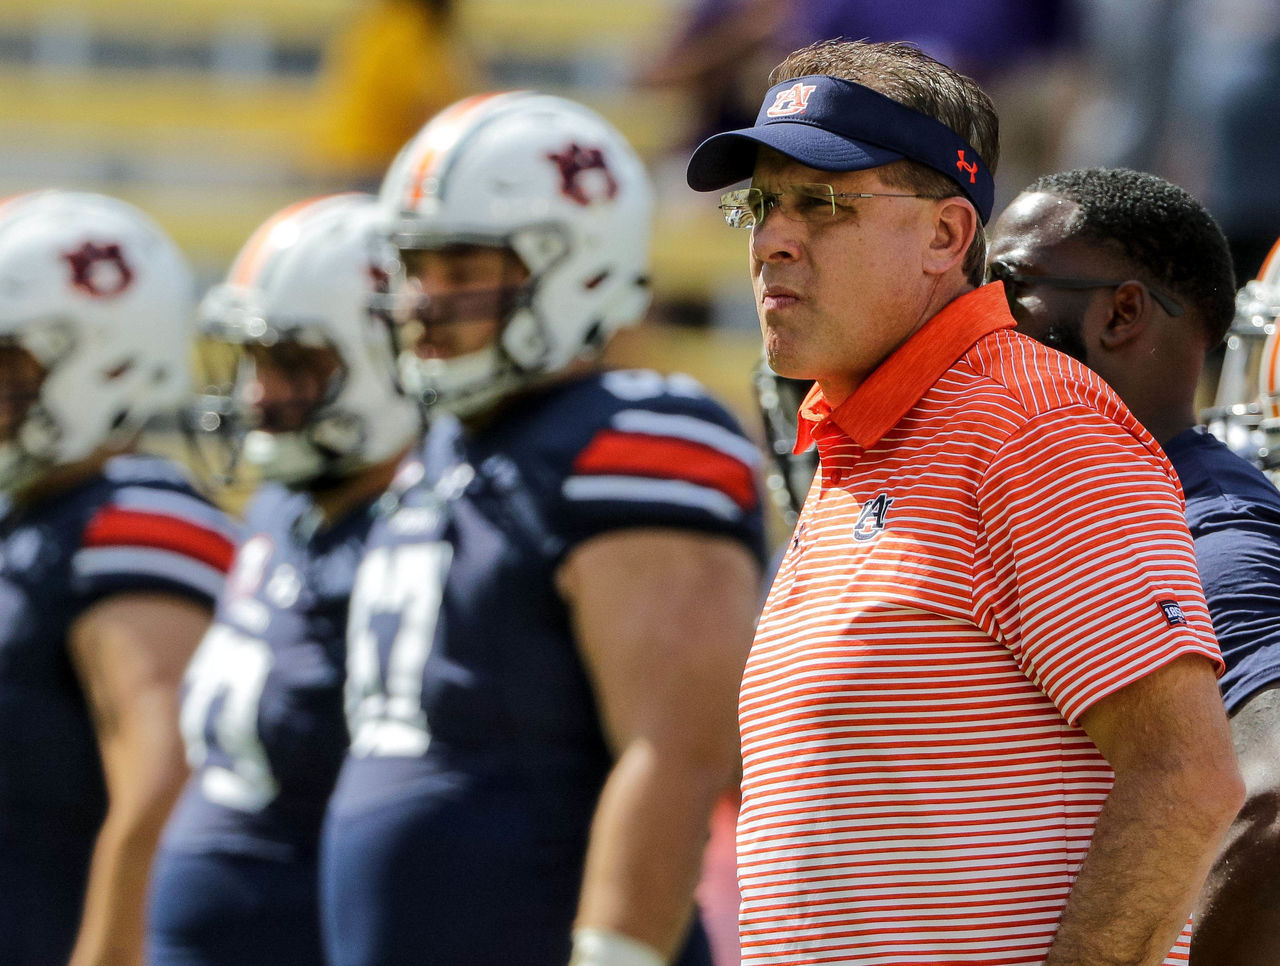 Cropped 2017 10 14t192525z 958471005 nocid rtrmadp 3 ncaa football auburn at louisiana state